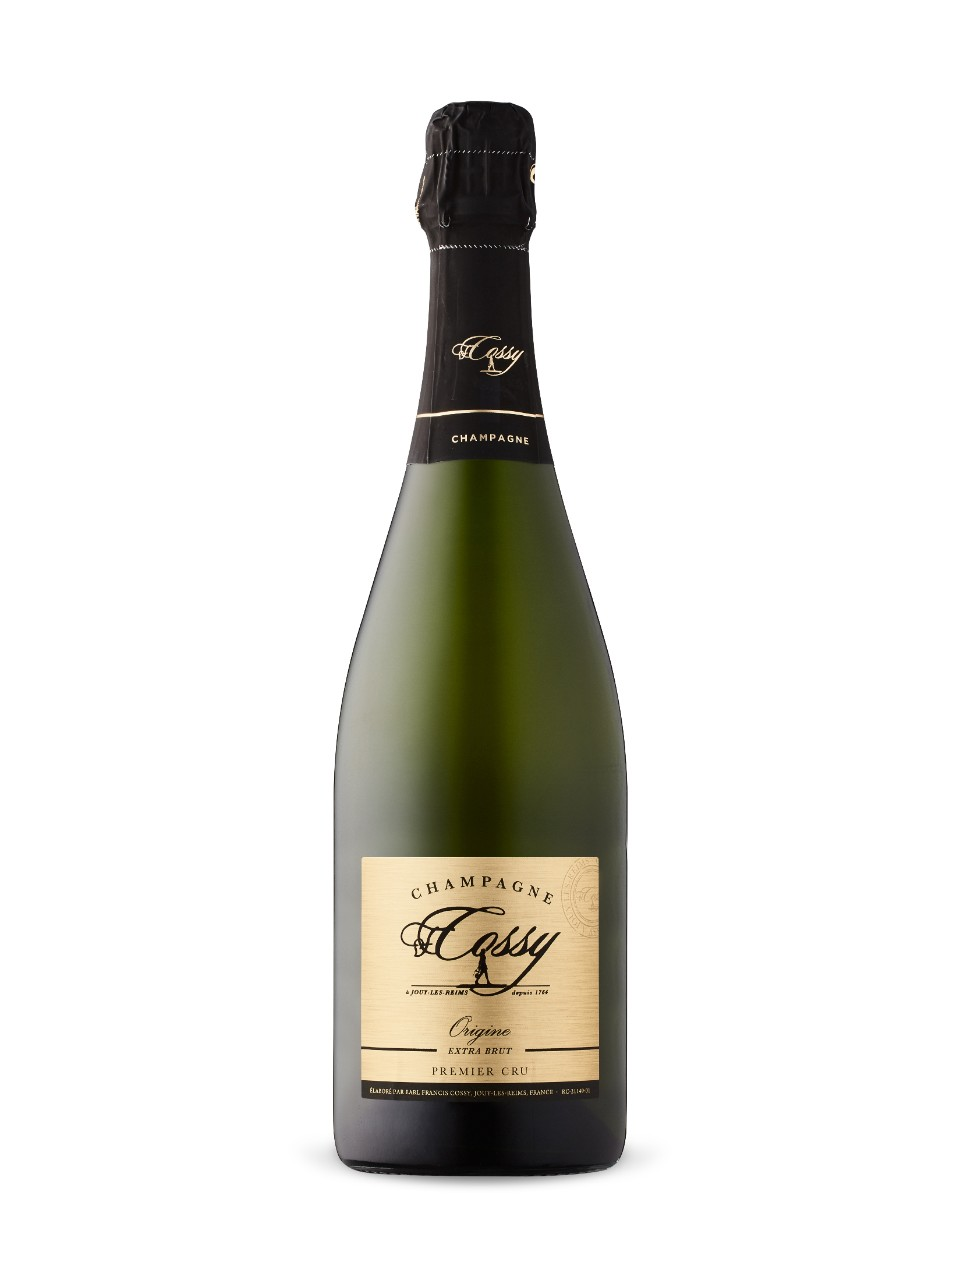 Image for Champagne Cossy Cuvée Origine from LCBO